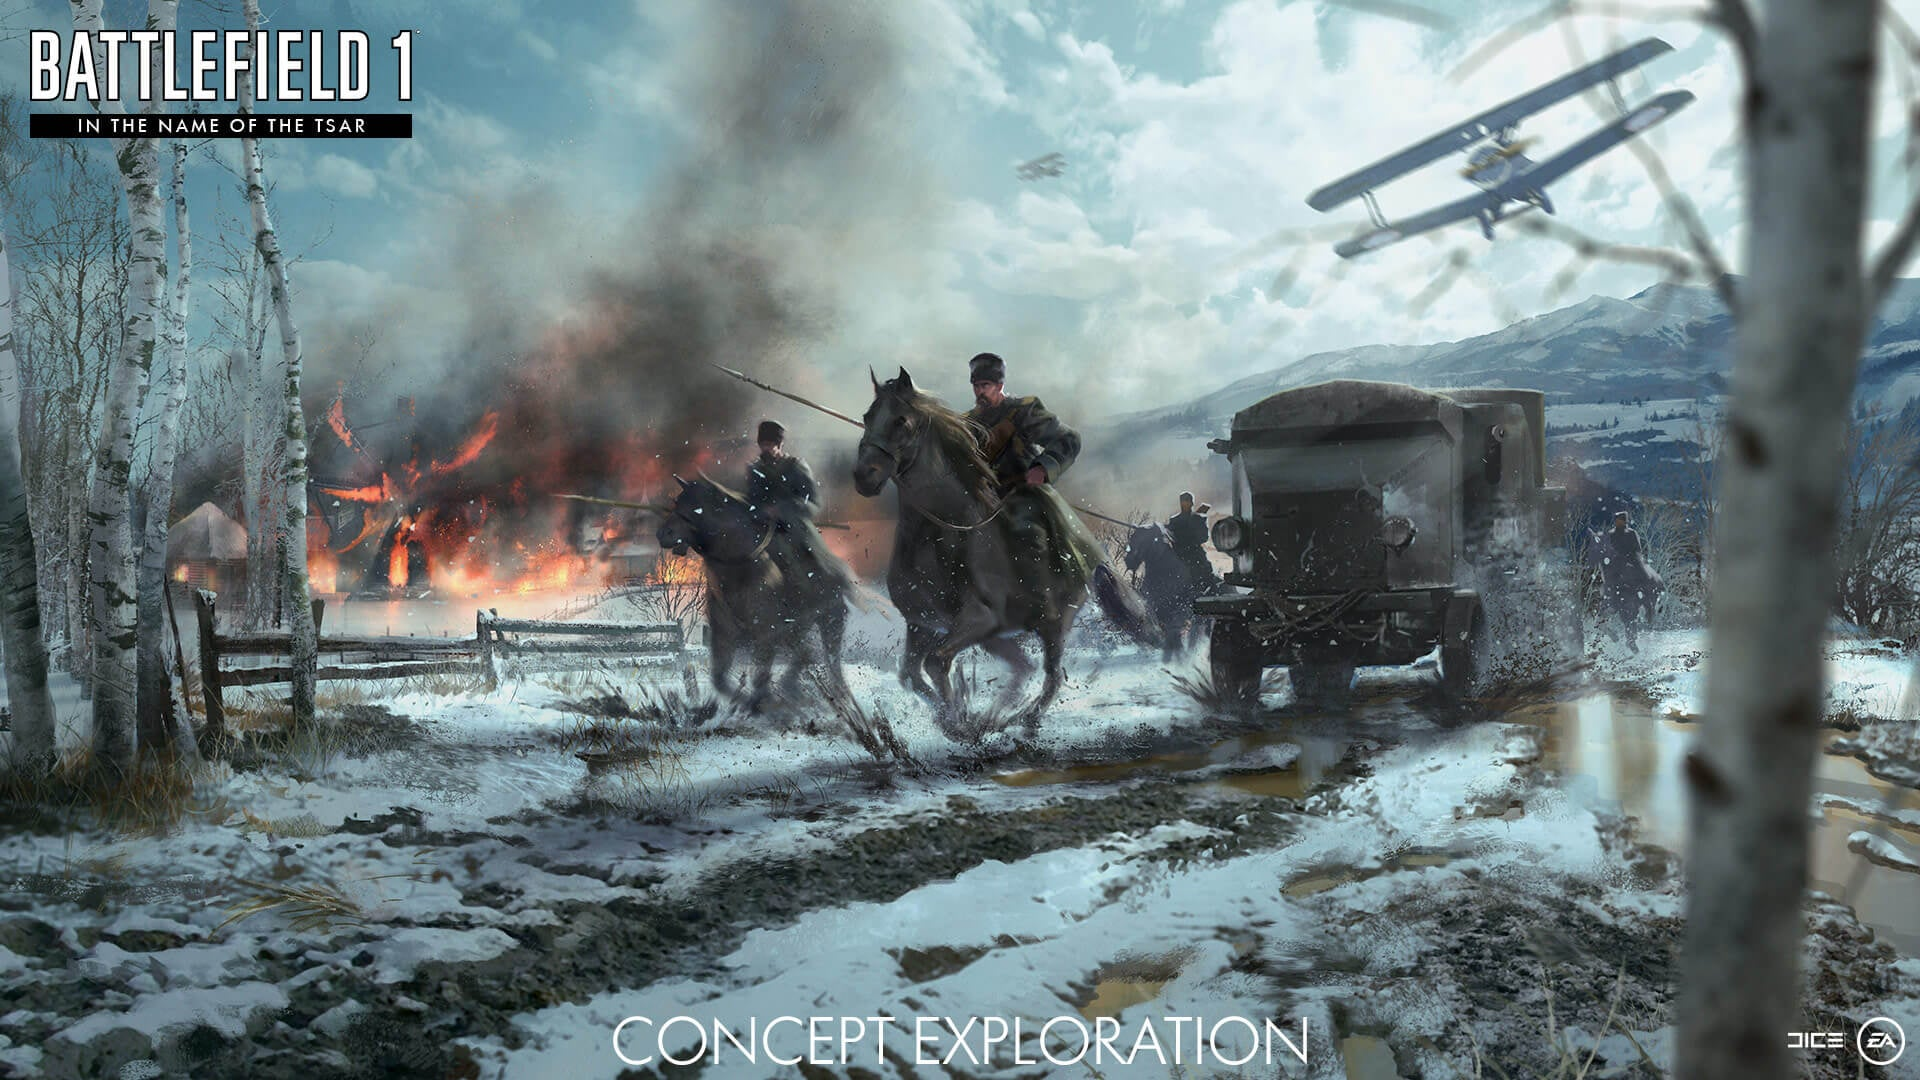 Dice Shows More Concept Art From Battlefield 1 S In The Name Of